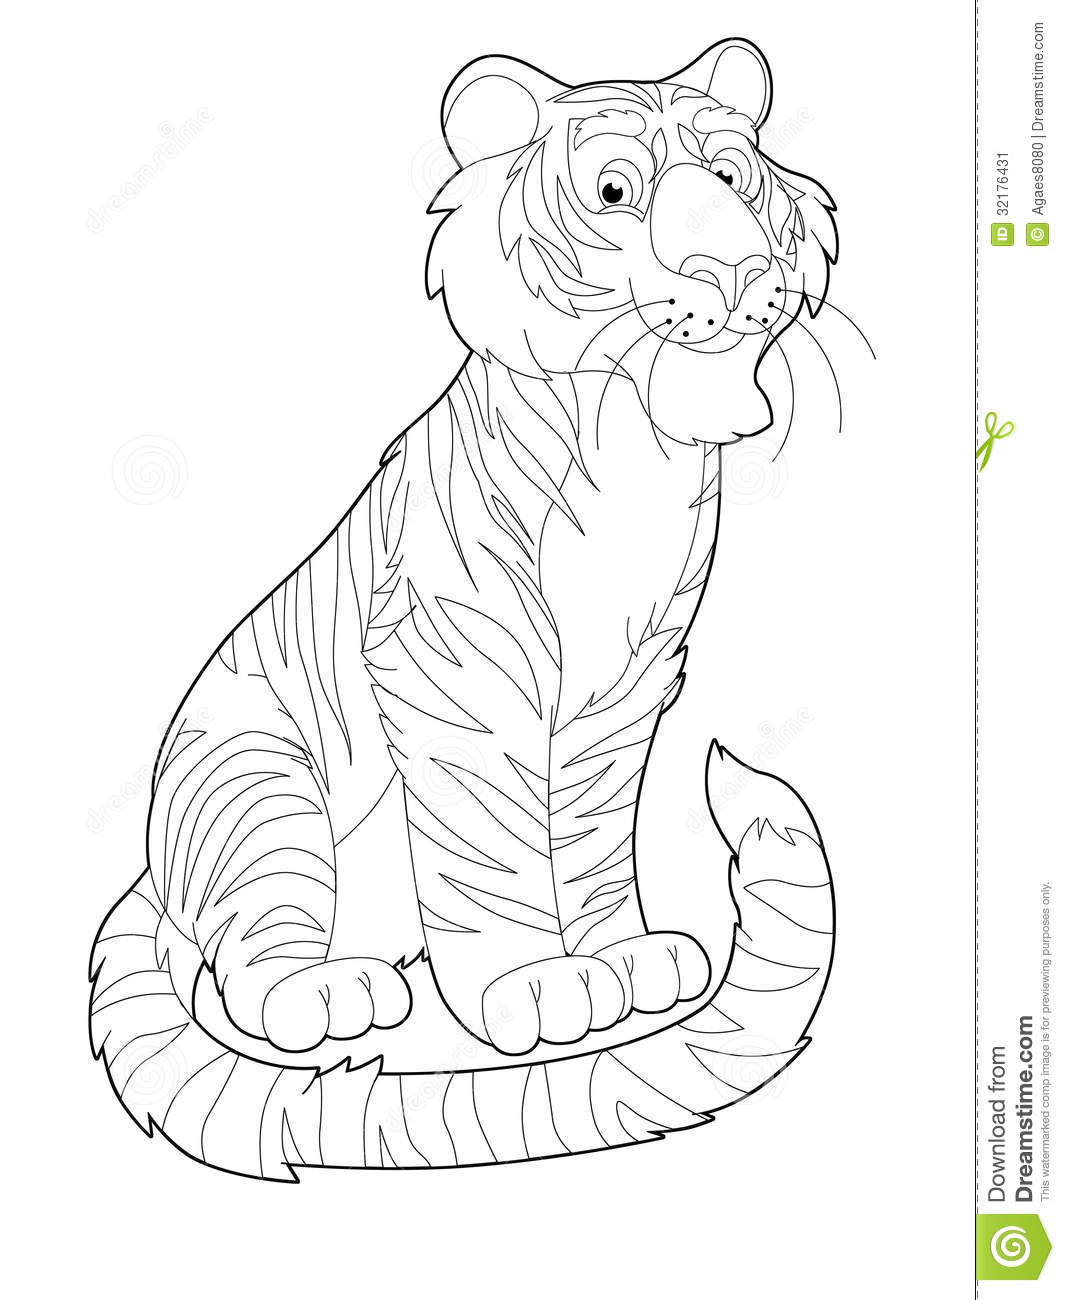 safari animals coloring pages - photo#35